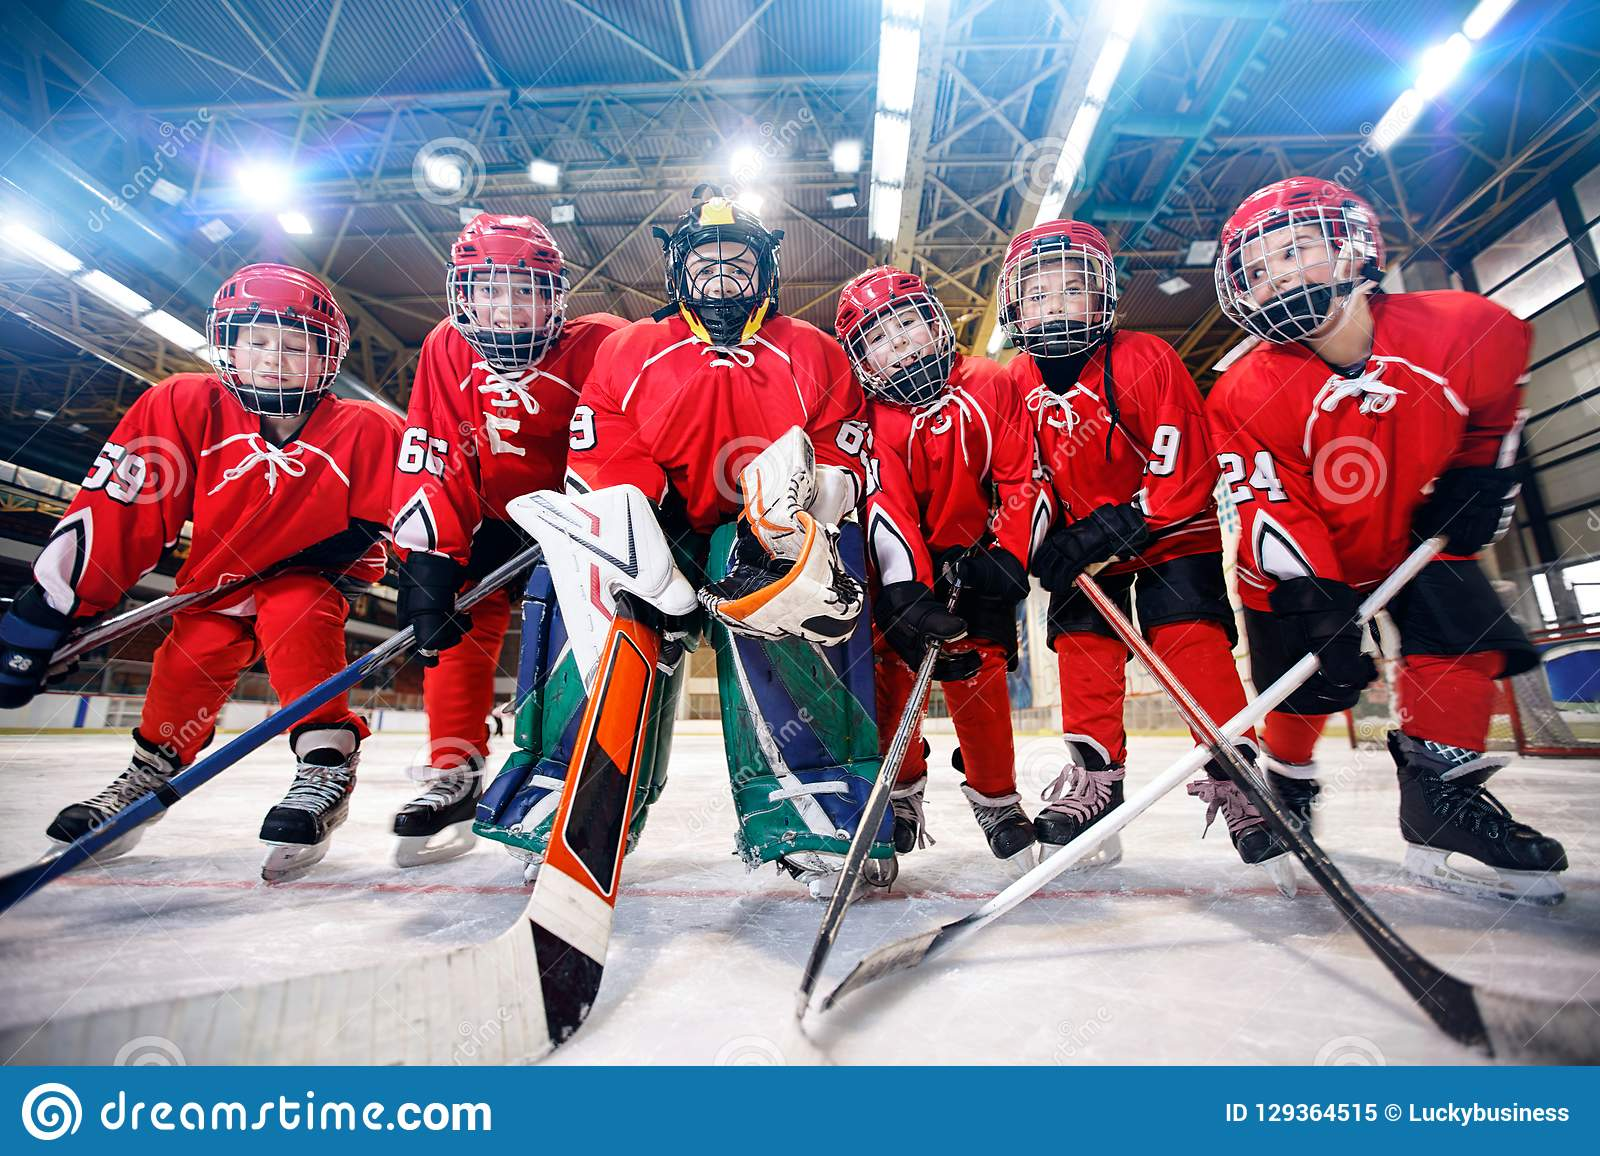 Children playing ice hockey on the rink